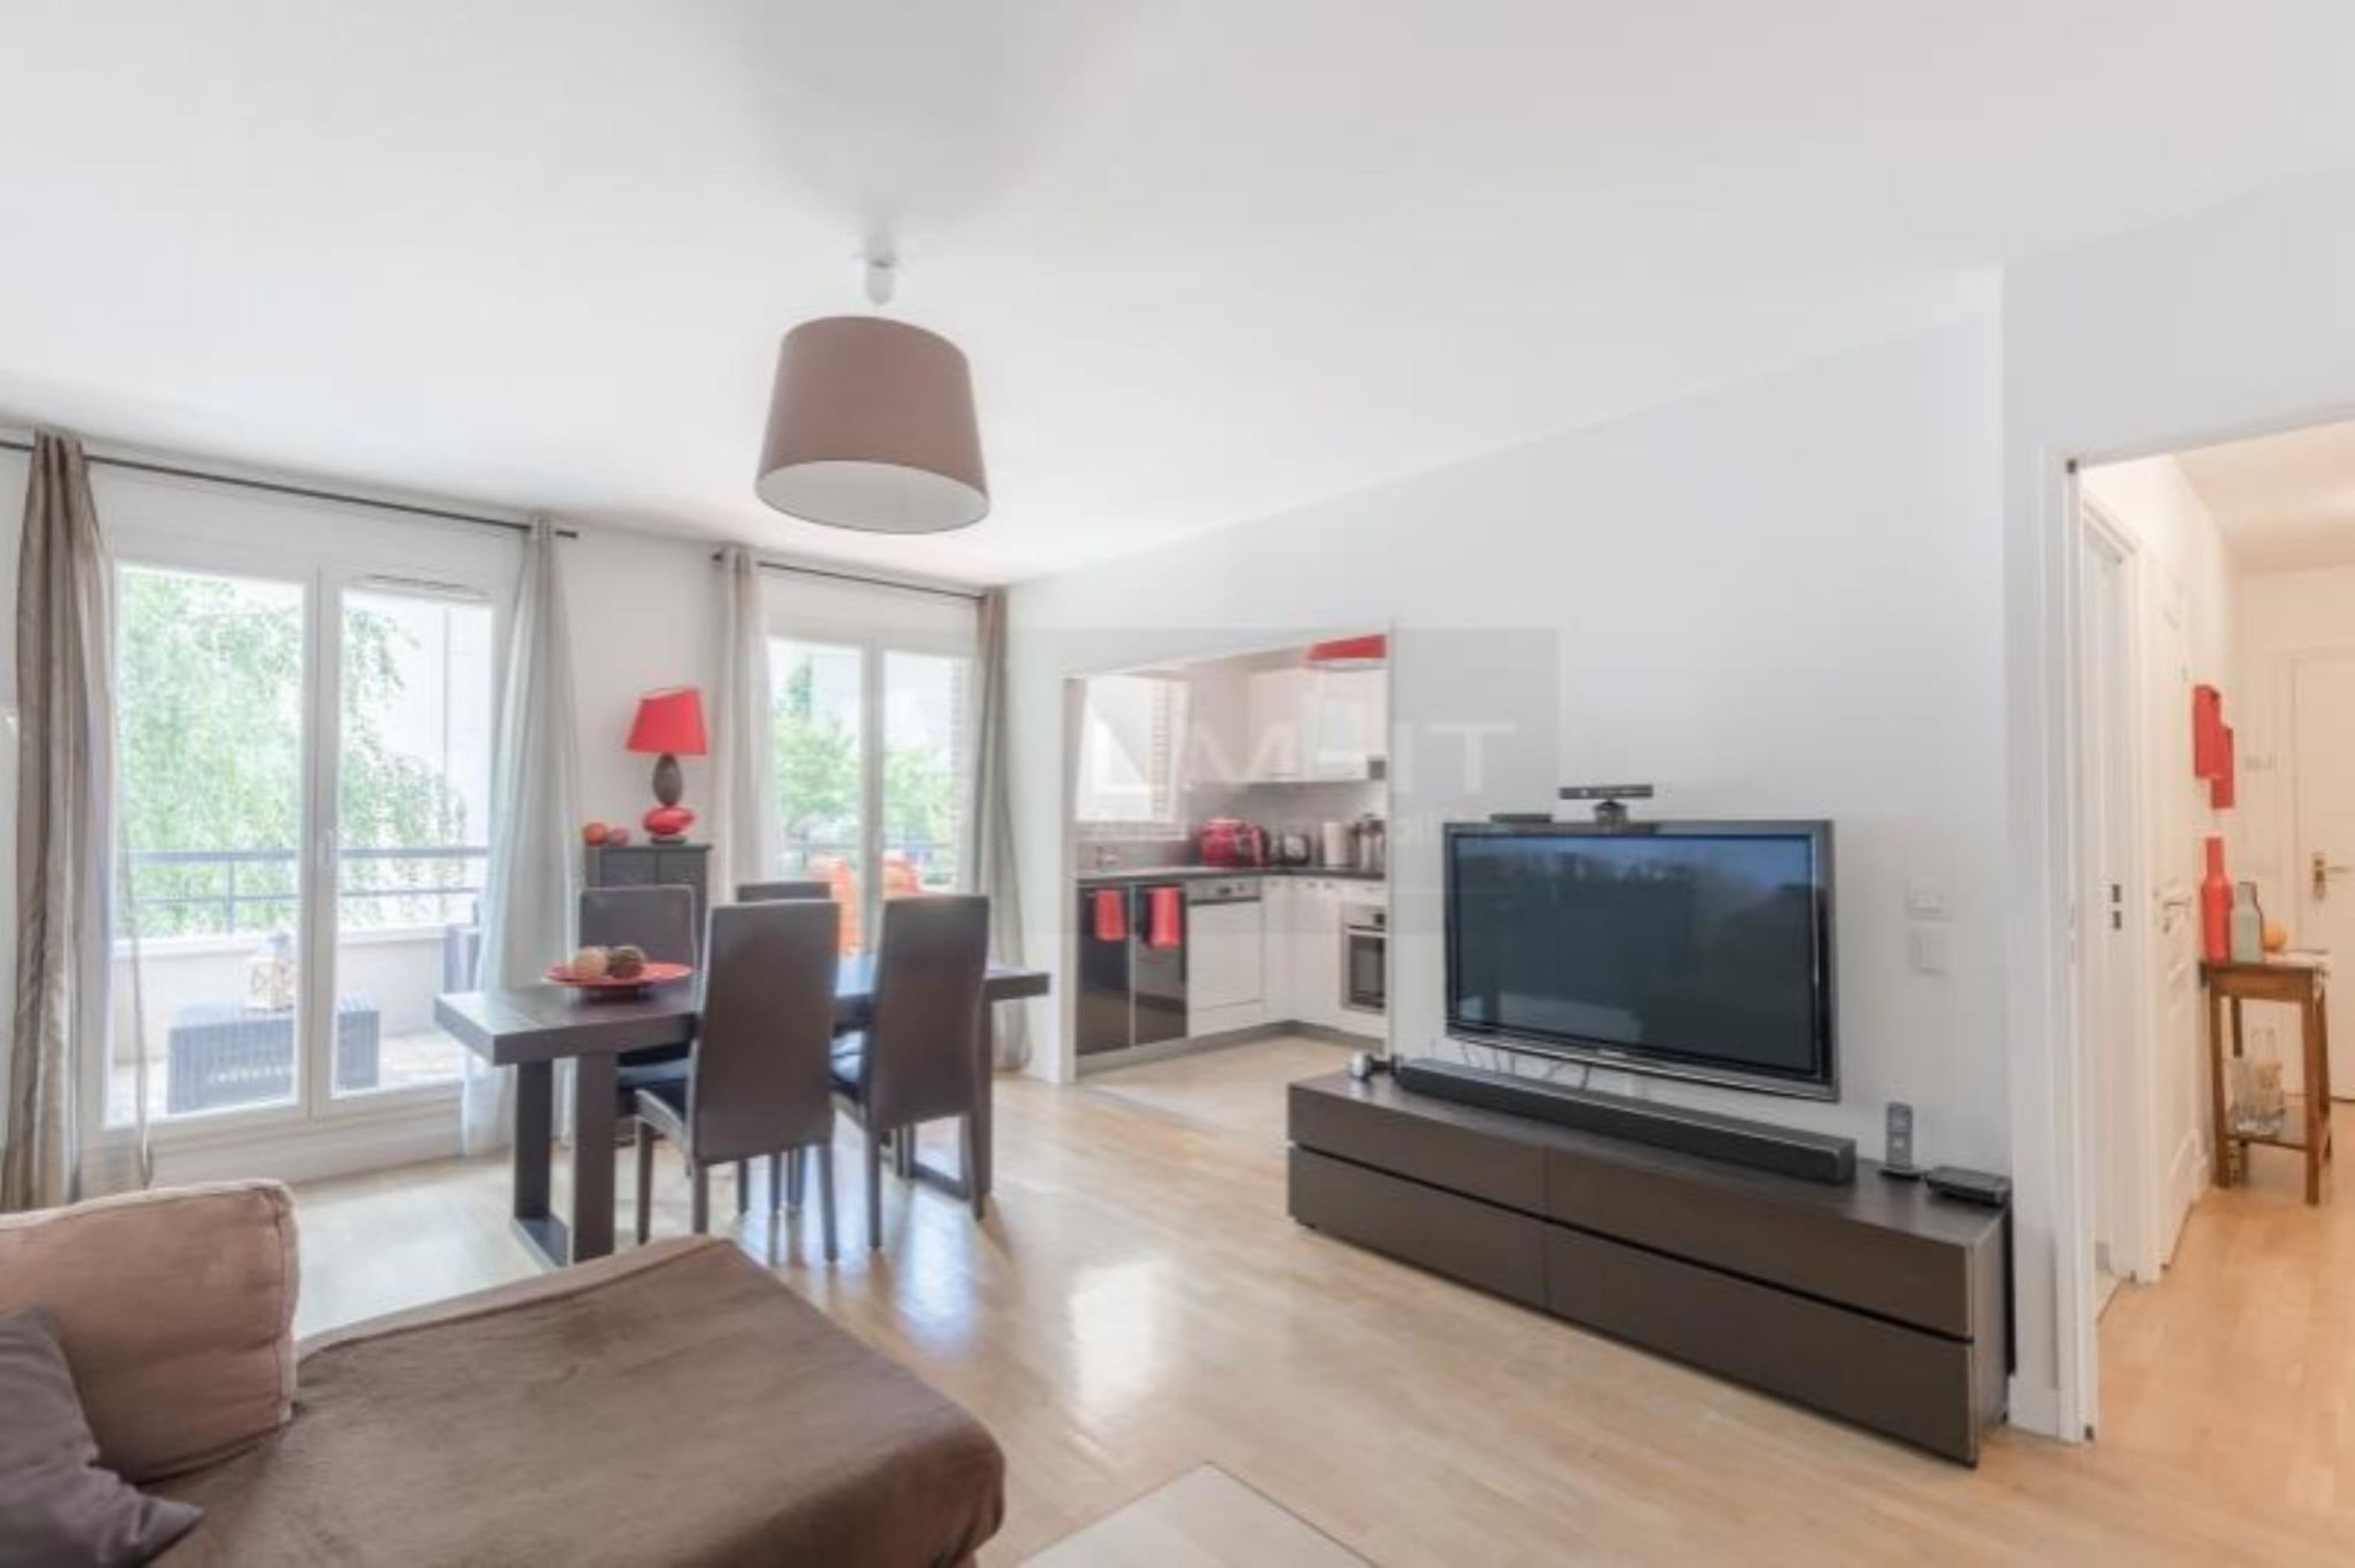 agence immobilière sevres 92 le chesnay 78 achat vente location appartement maison immobilier LMHT ANF WYXNGYTI